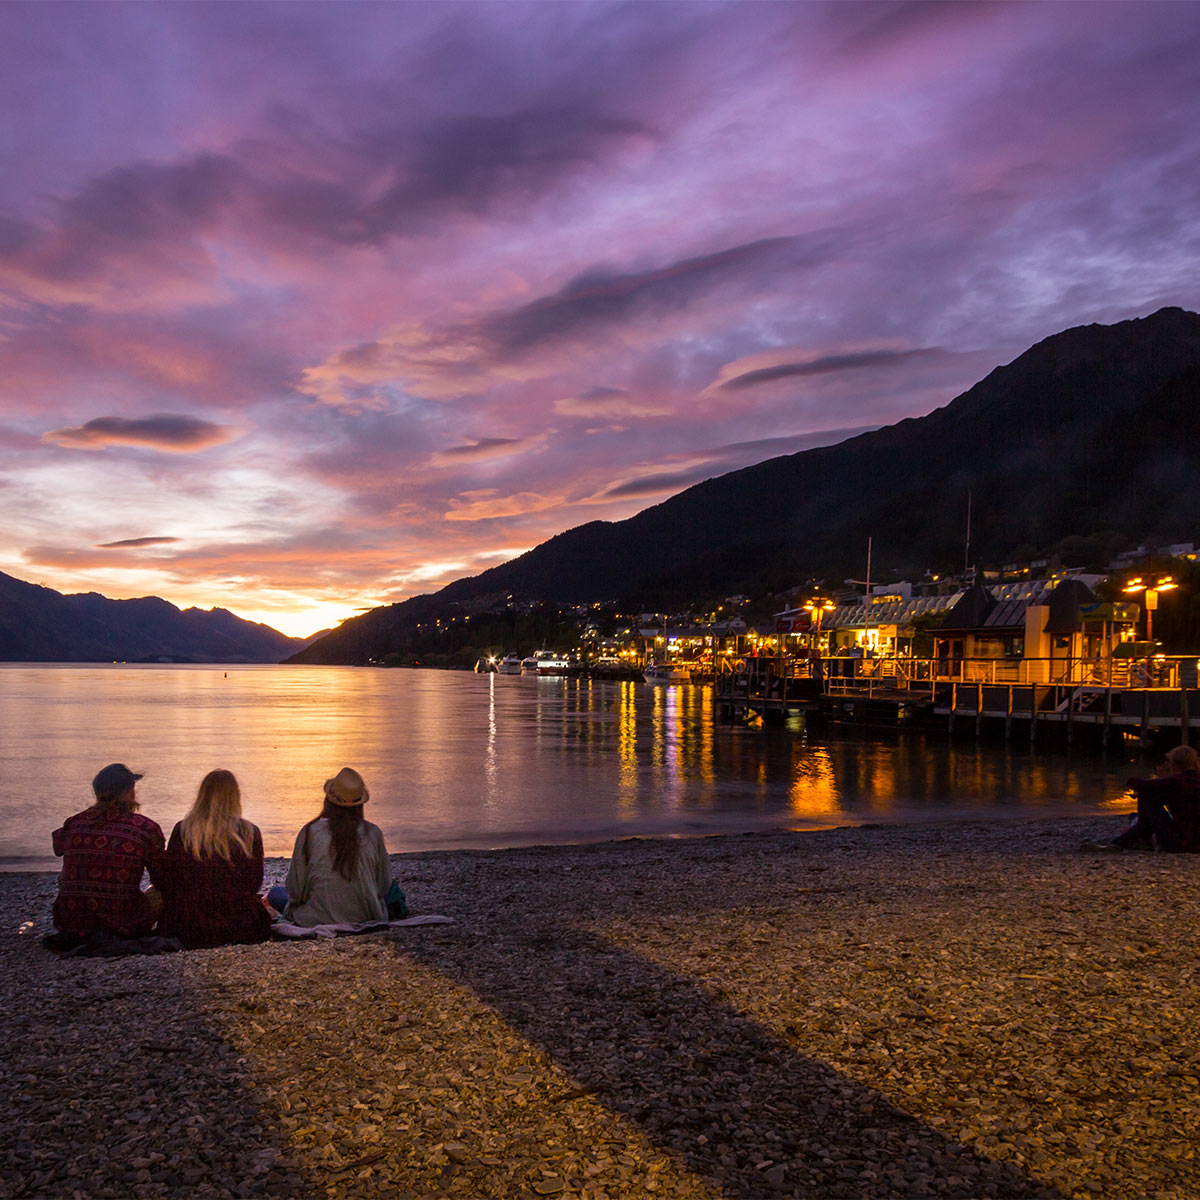 https://www.shimmerlake.co.nz/wp-content/uploads/2016/05/Watching-the-sunset-on-Queenstown-Bay.jpg